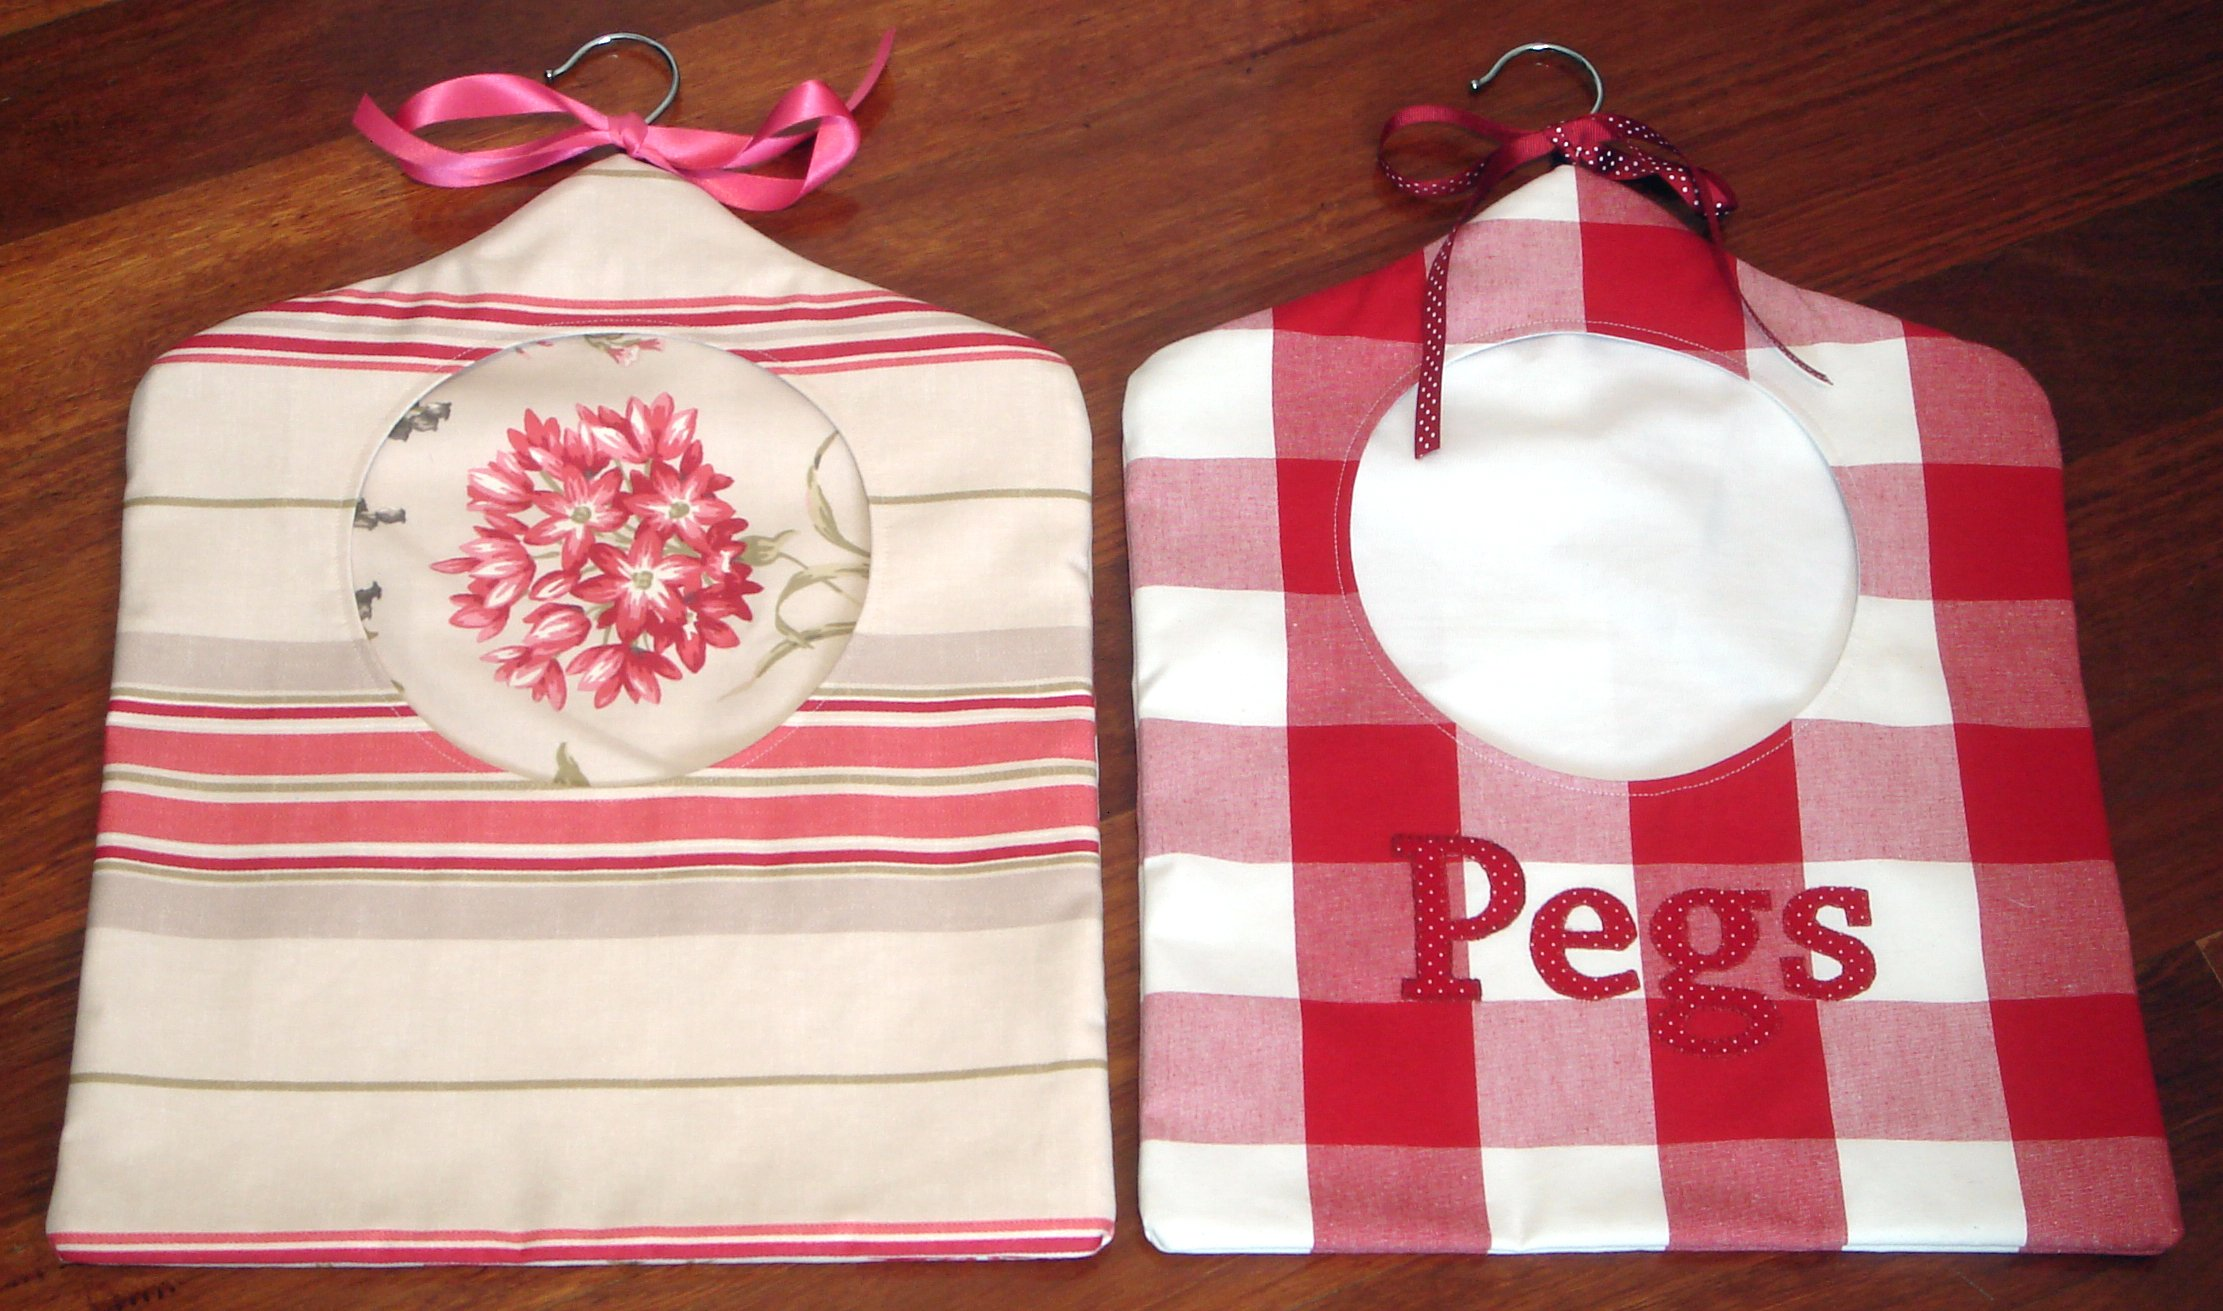 16+ Creative Clothespin Bag Patterns and Ideas | Guide Patterns